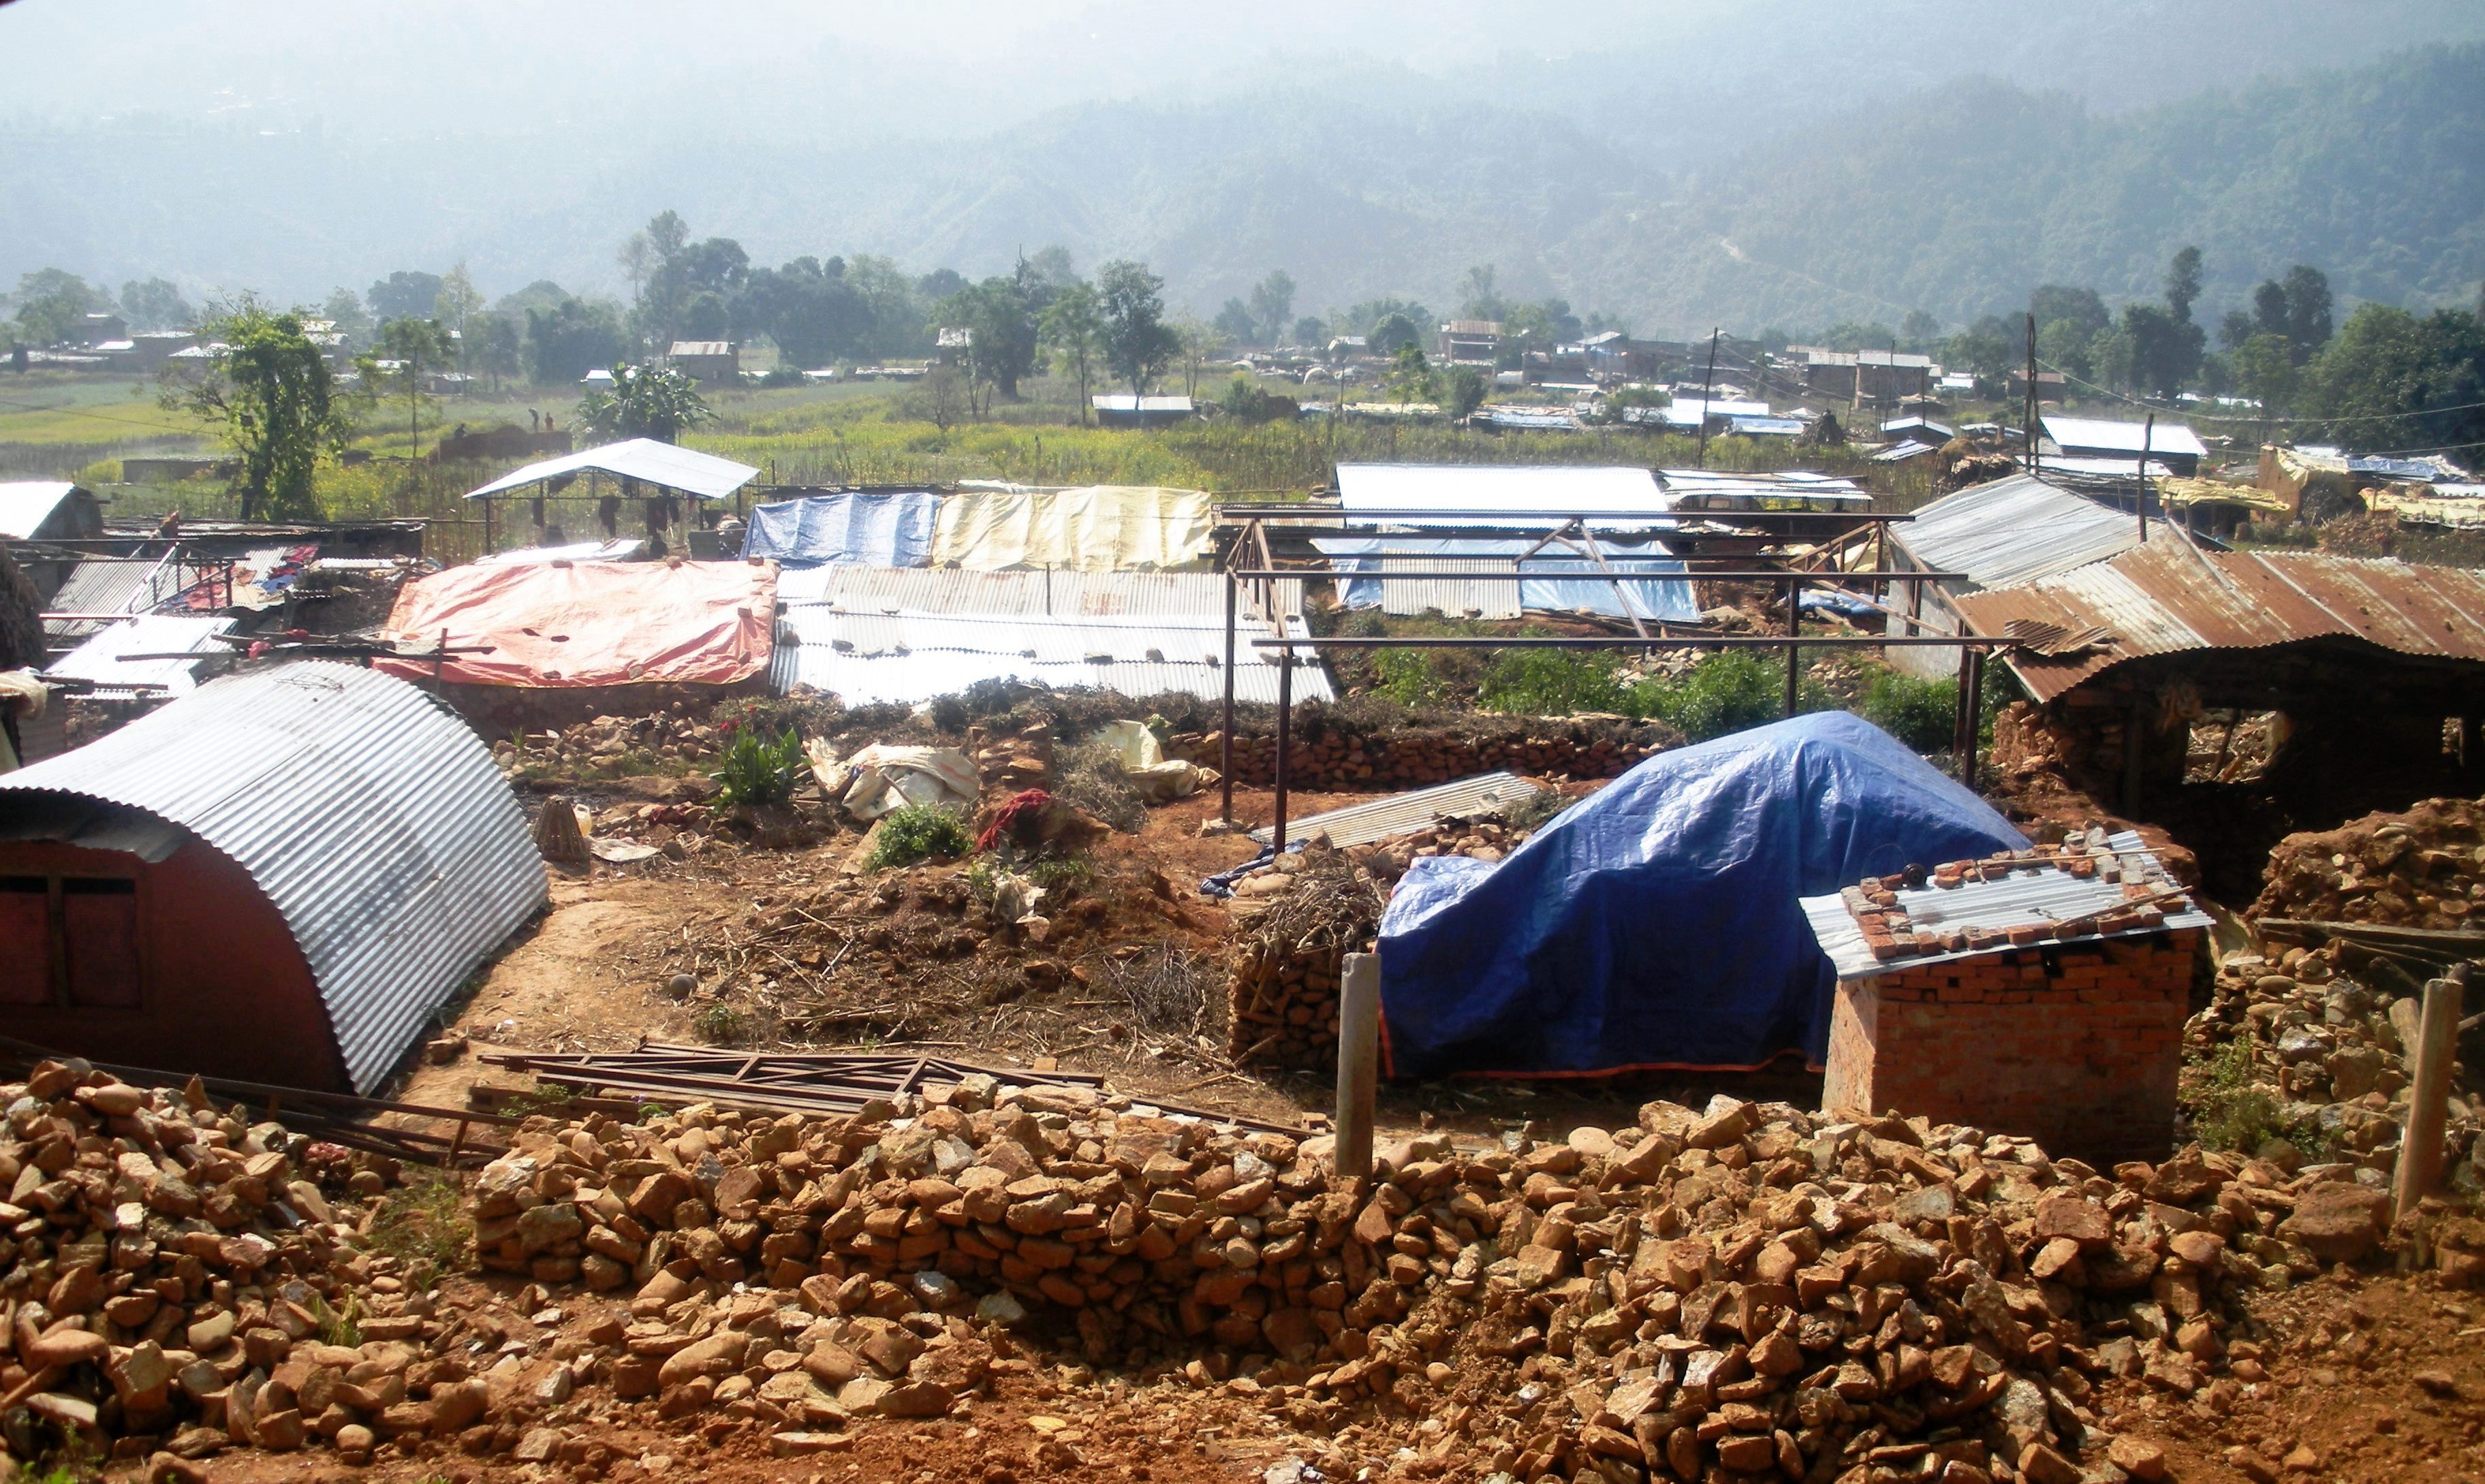 The view of Majhi community after the earthquake in 2015